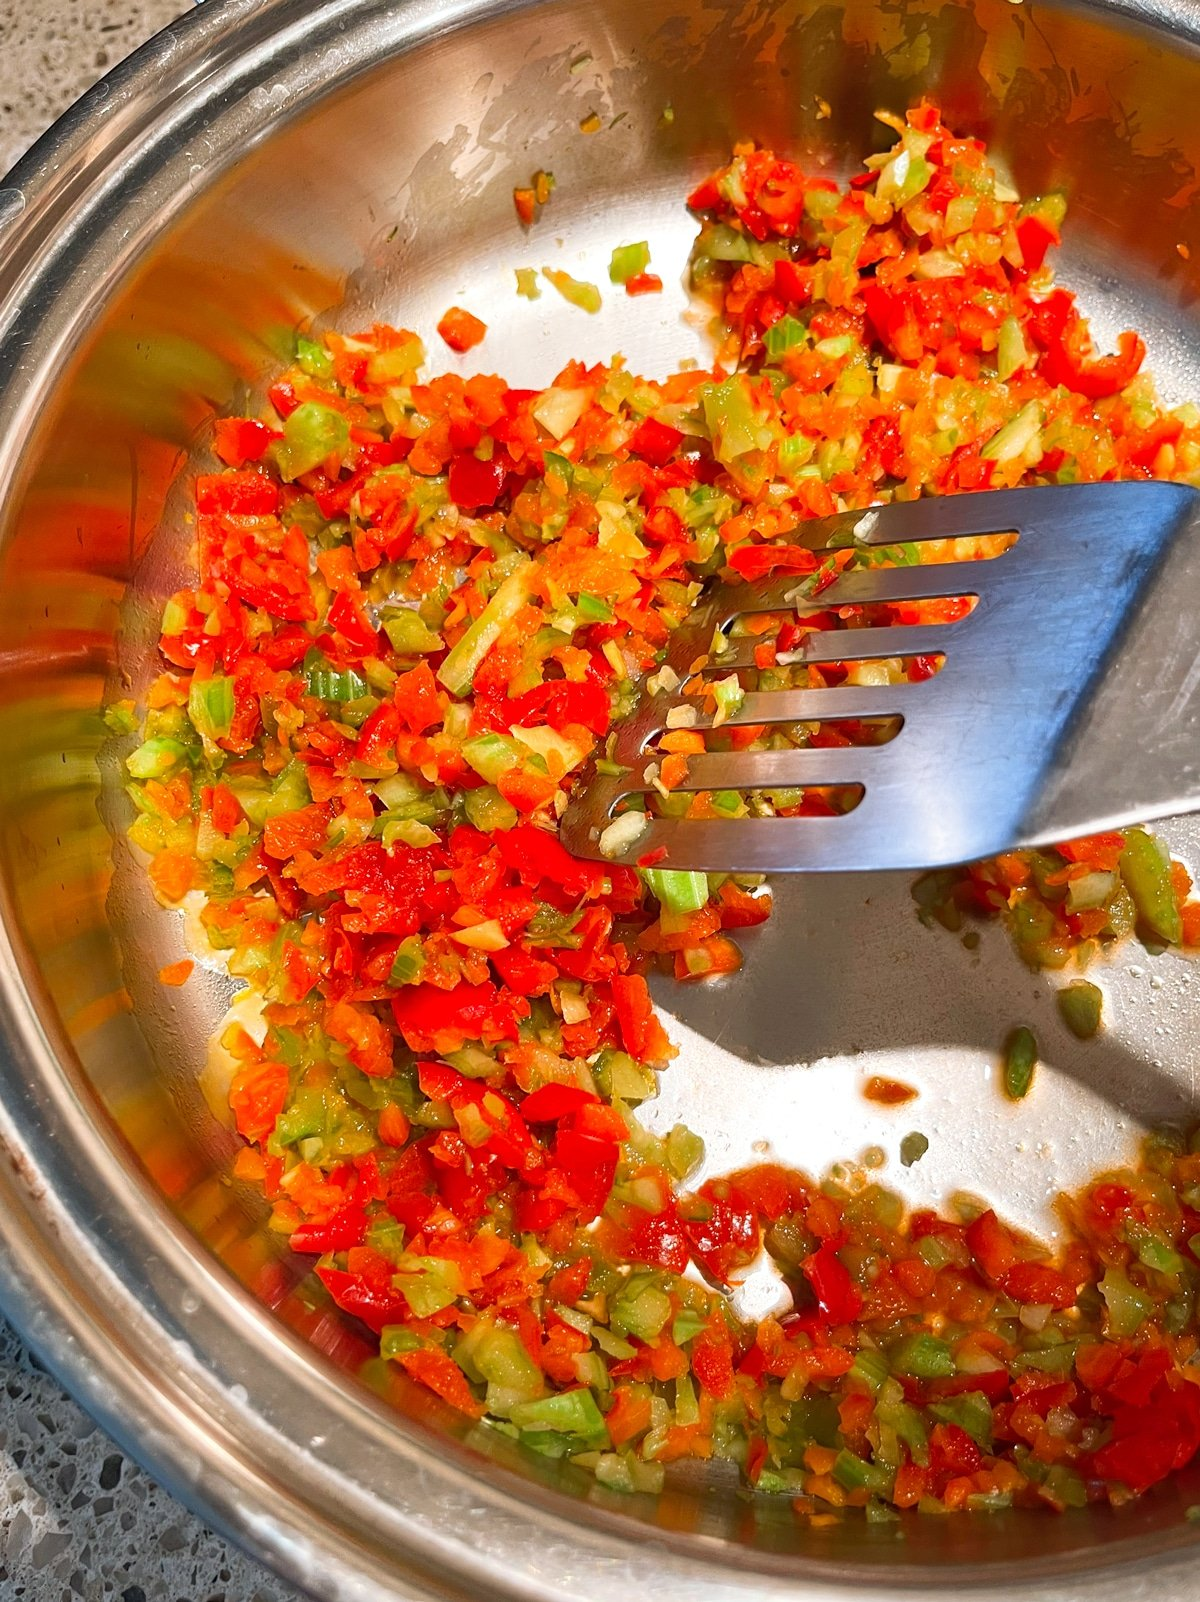 Sauteing chopped vegetables in a skillet.